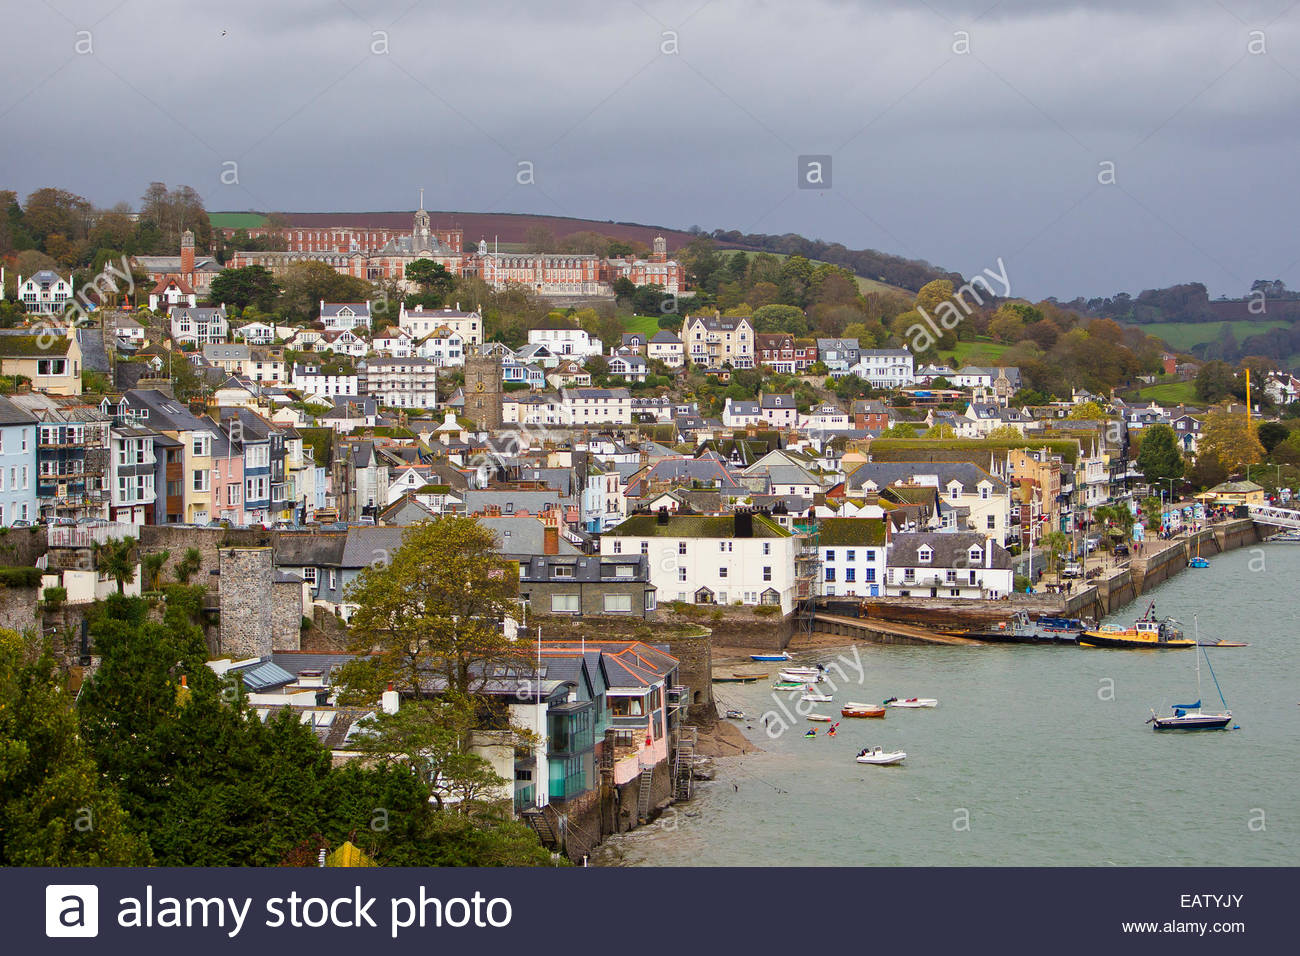 The town of Dartmouth and Britannia Royal Navy College atop the hill. - Stock Image